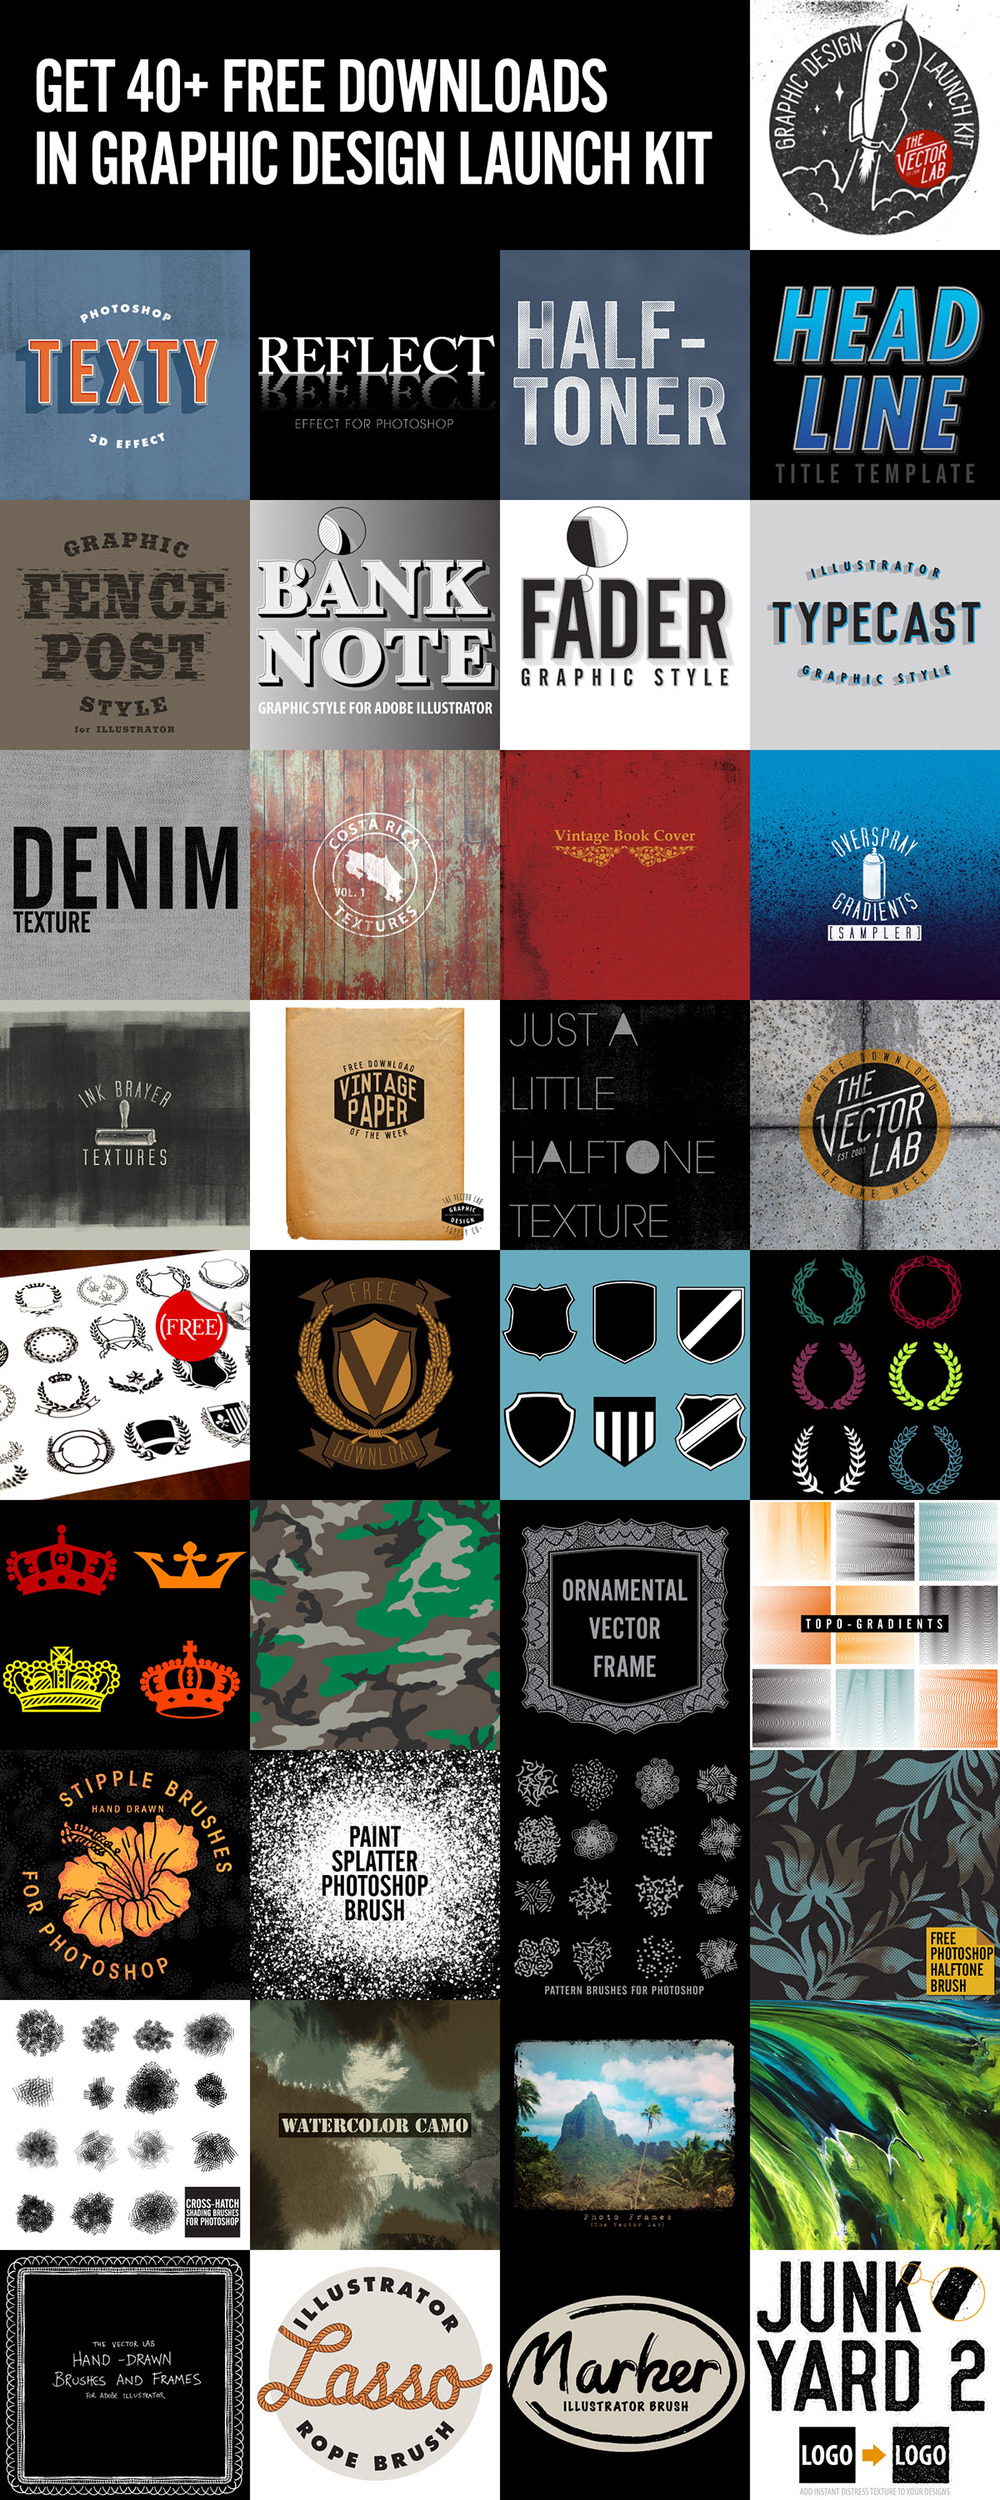 Graphic Design Launch Kit - Get 40+ Free Downloads